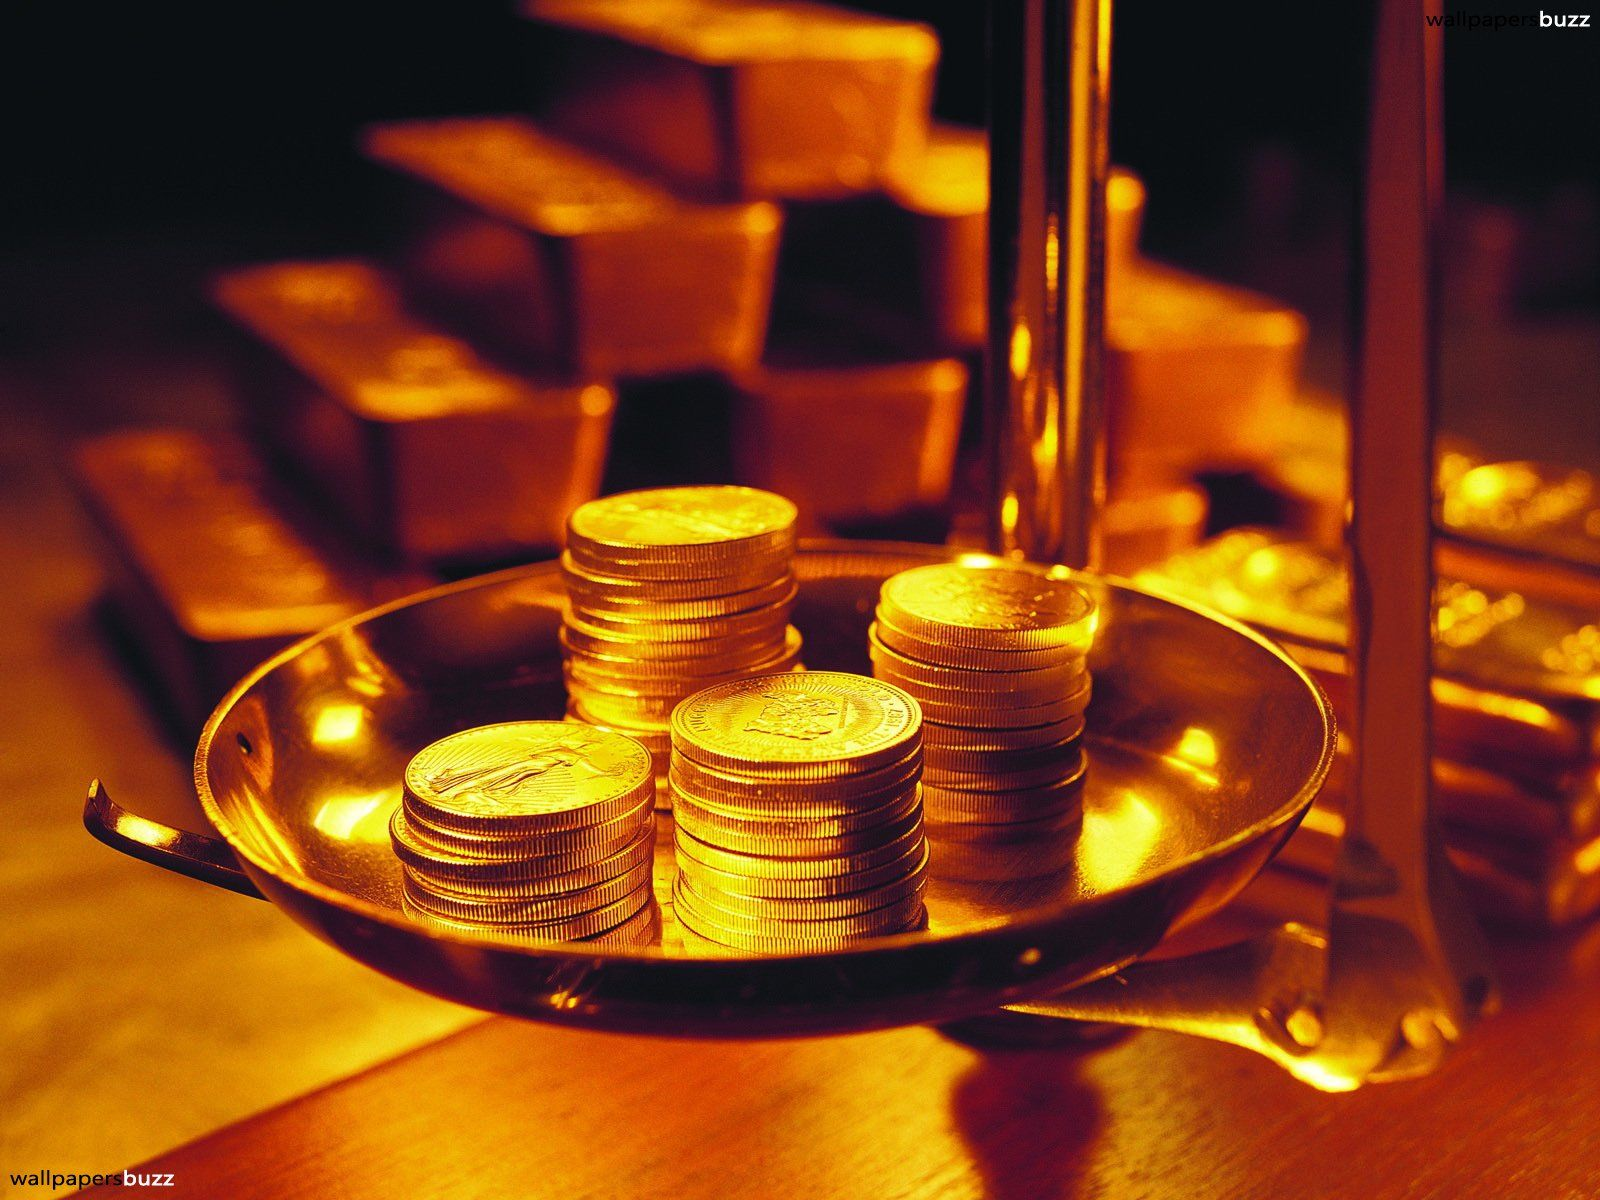 Gold Coin Wallpapers   Top Gold Coin Backgrounds 1600x1200